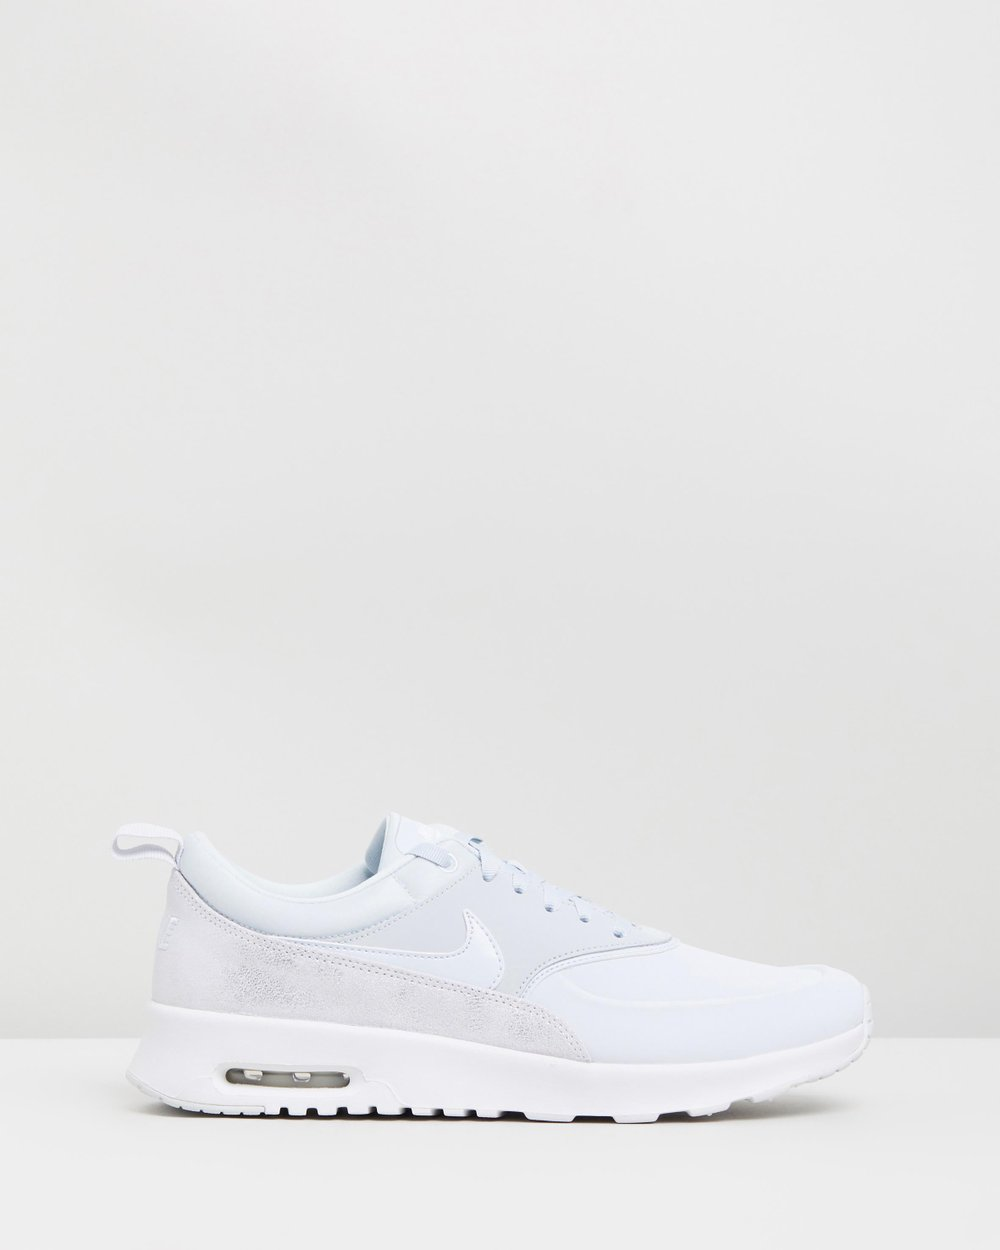 official photos ec8b4 ecc92 Air Max Thea Premium - Women s by Nike Online   THE ICONIC   Australia